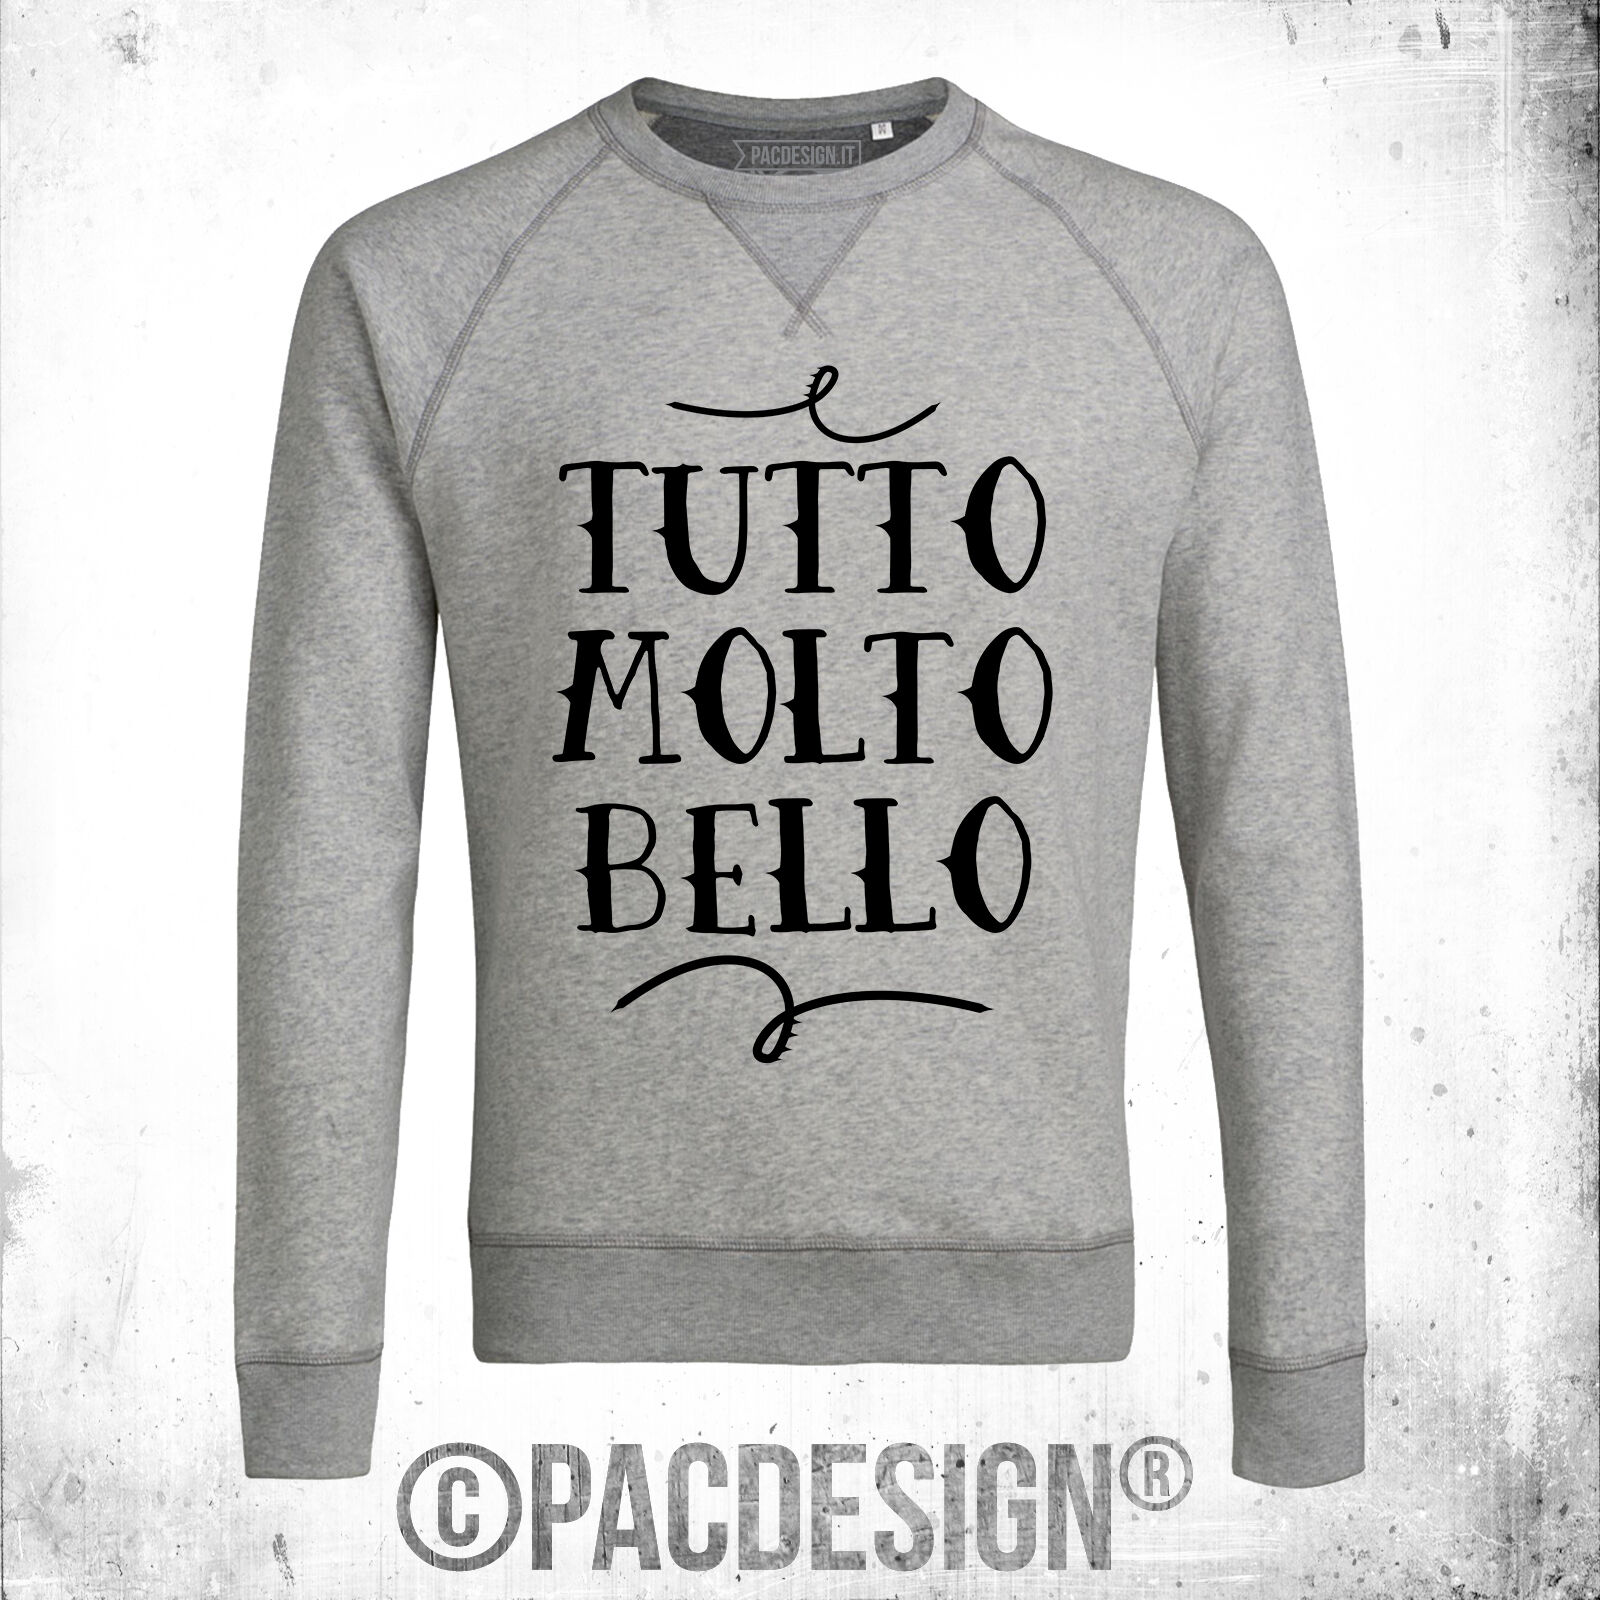 FELPA UOMO WORDS TUTTO MOLTO BELLO FASHION IRONIC WHY SO VINTAGE DK0460A